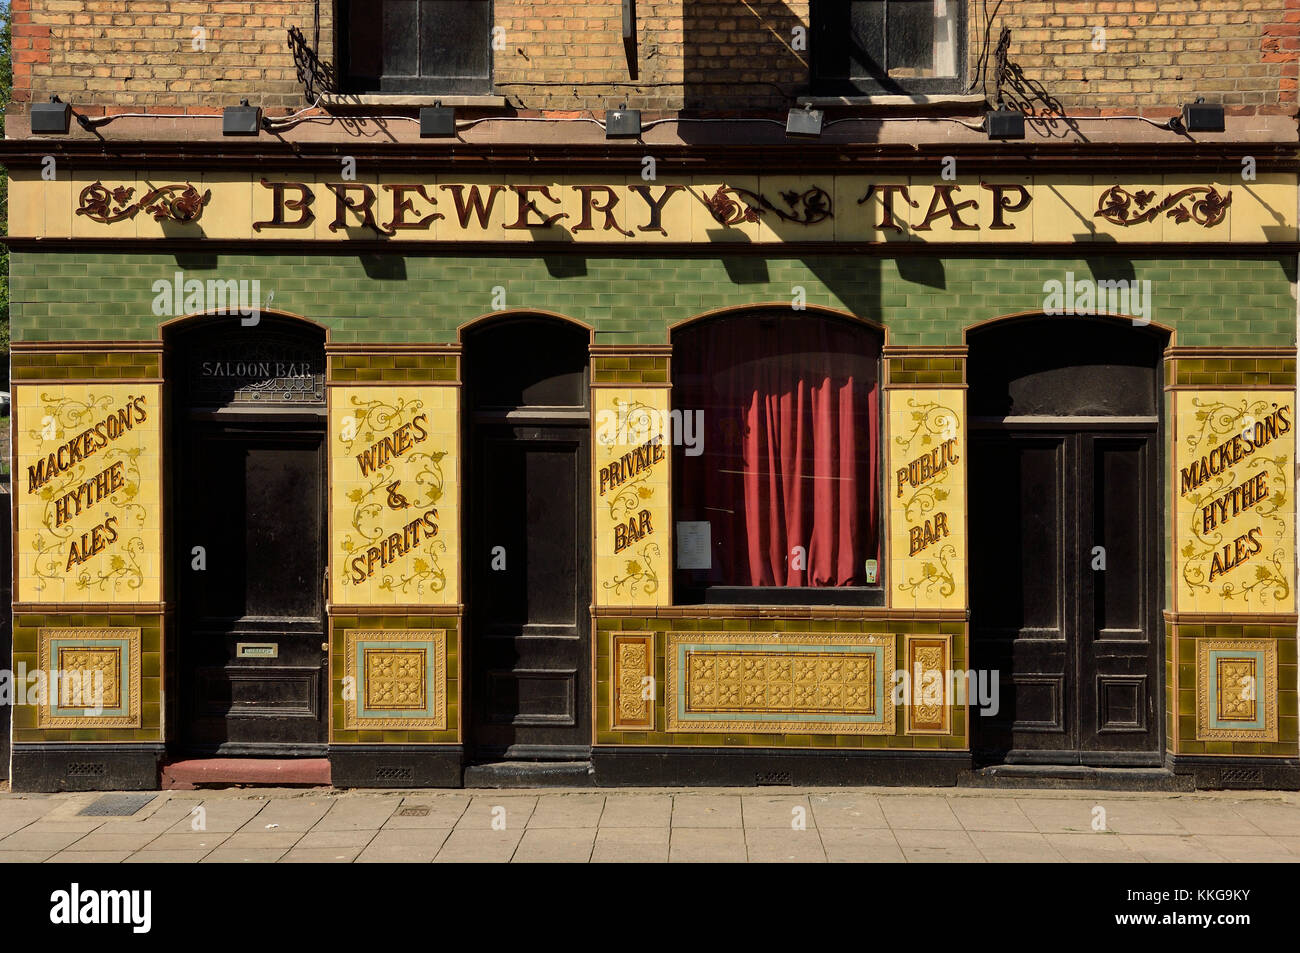 The Old Brewery Tap pub that has been converted to an arts educational exhibition space, Old town, Folkestone, Kent, - Stock Image